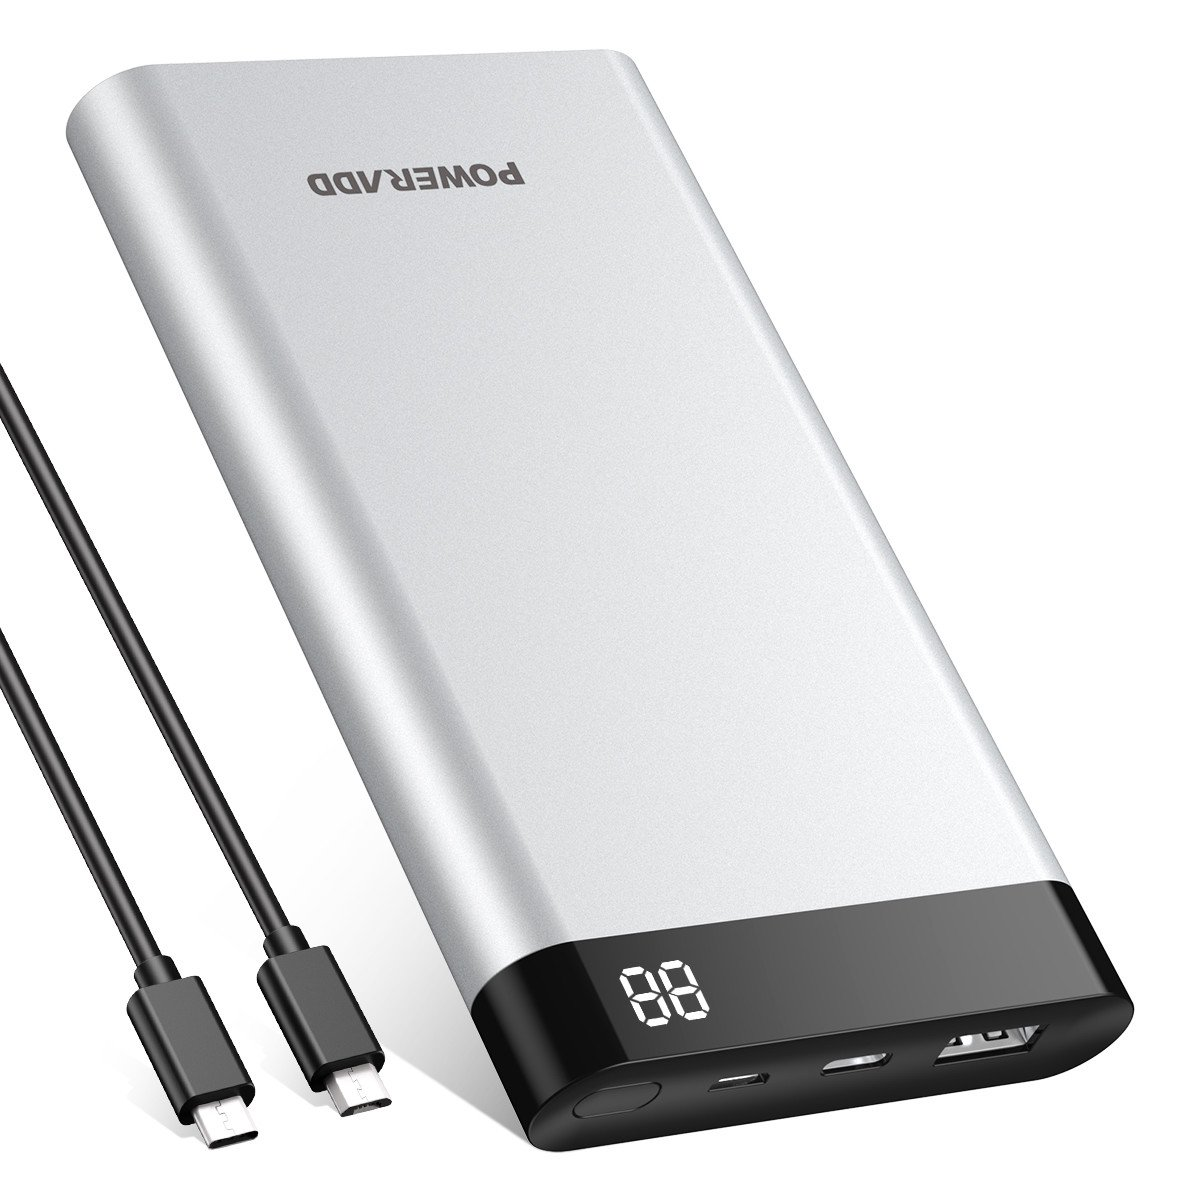 Brilliant small powerful power bank